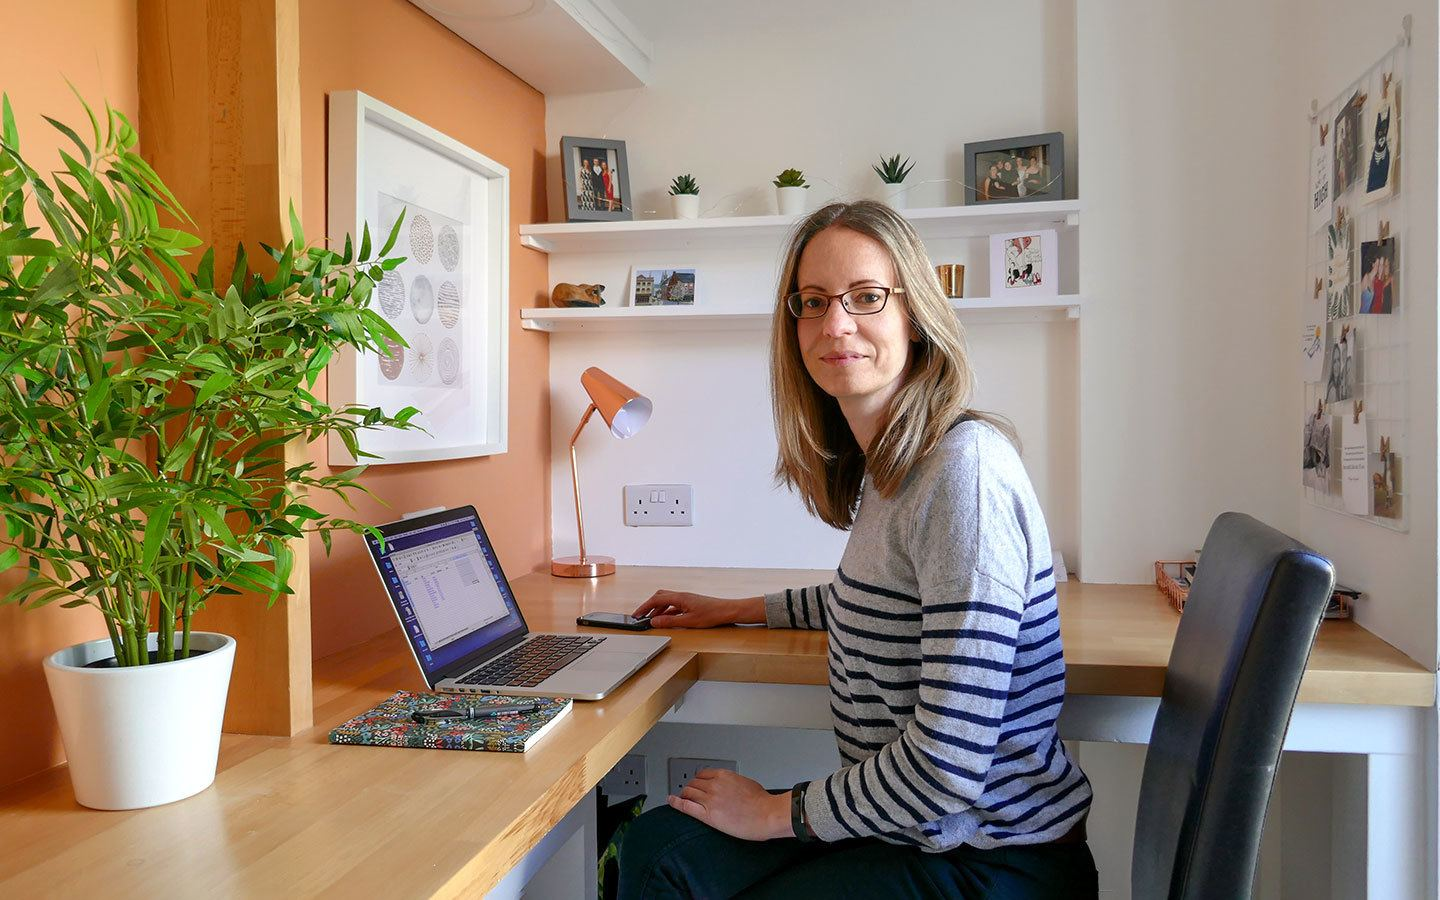 Travel blogger working at home